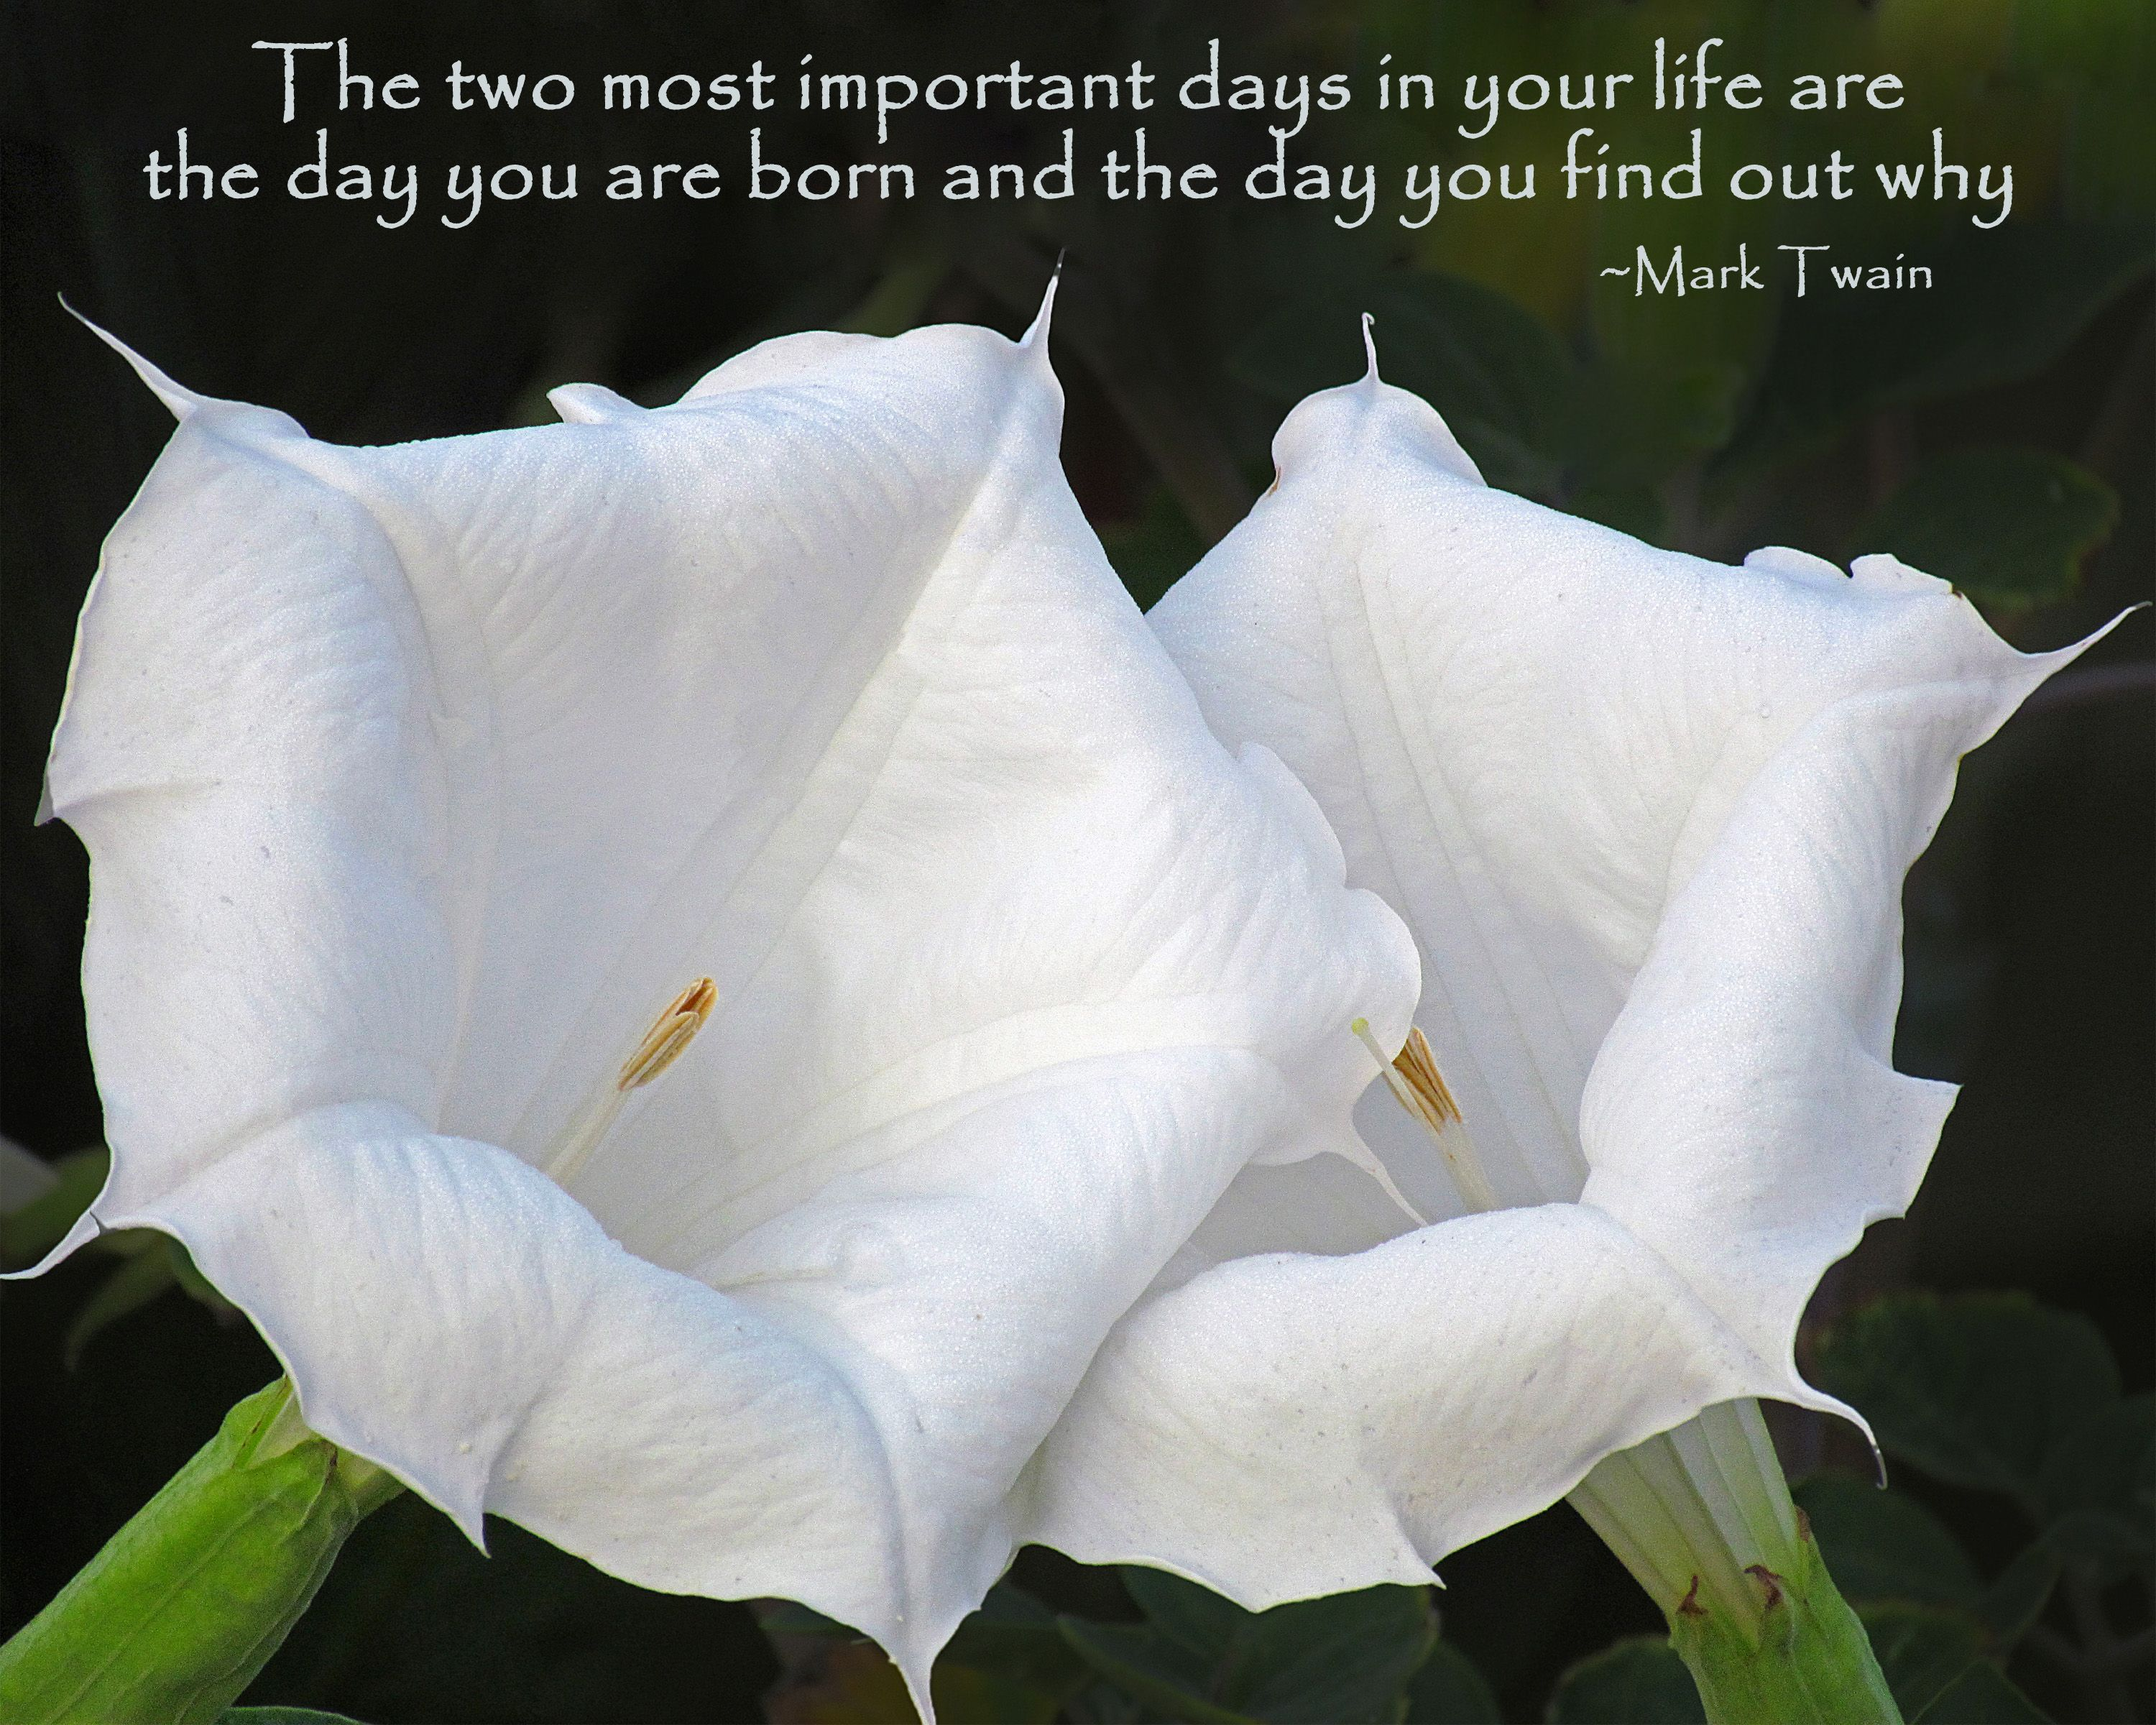 The Two Most Important Days Mark twain quotes, Flowers